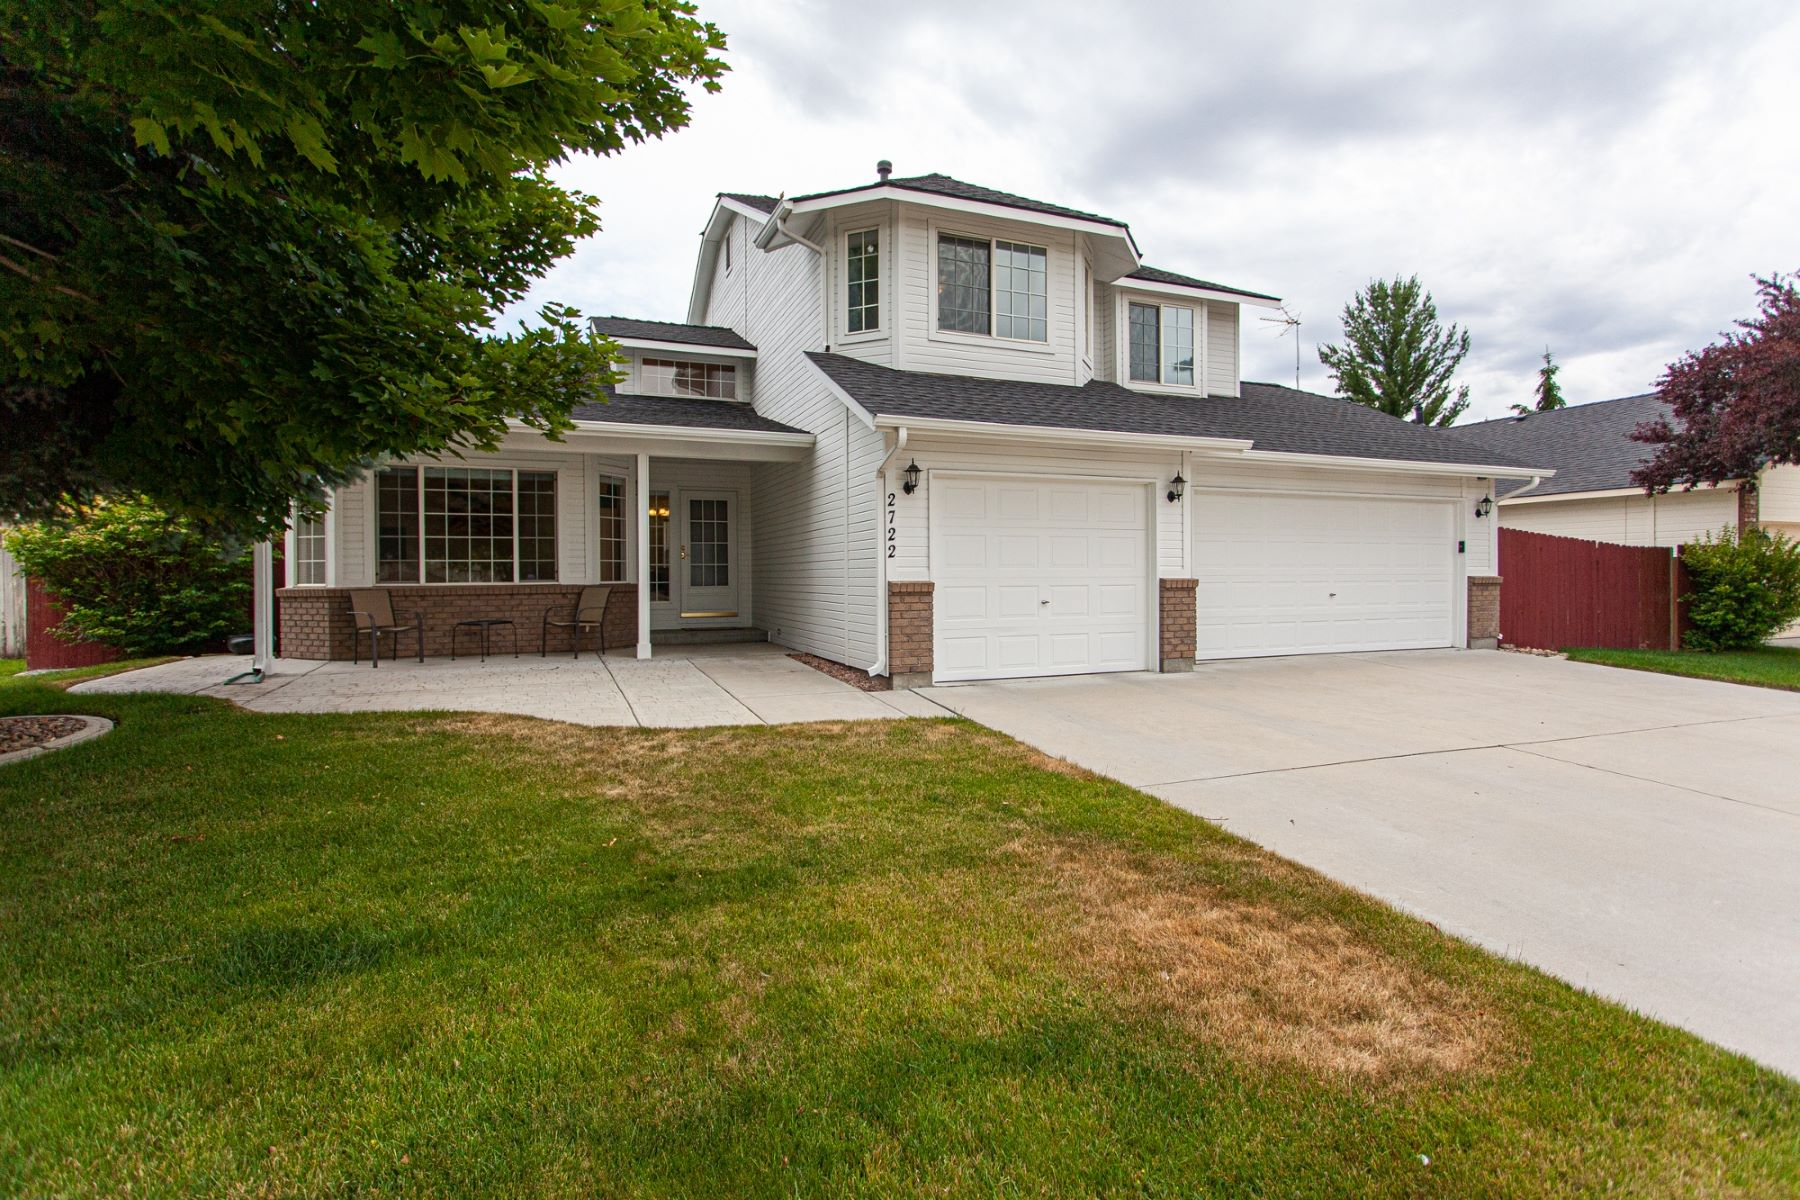 Single Family Homes for Sale at 2722 Snow Goose Way, Meridian 2722 N Snow Goose Way Meridian, Idaho 83646 United States